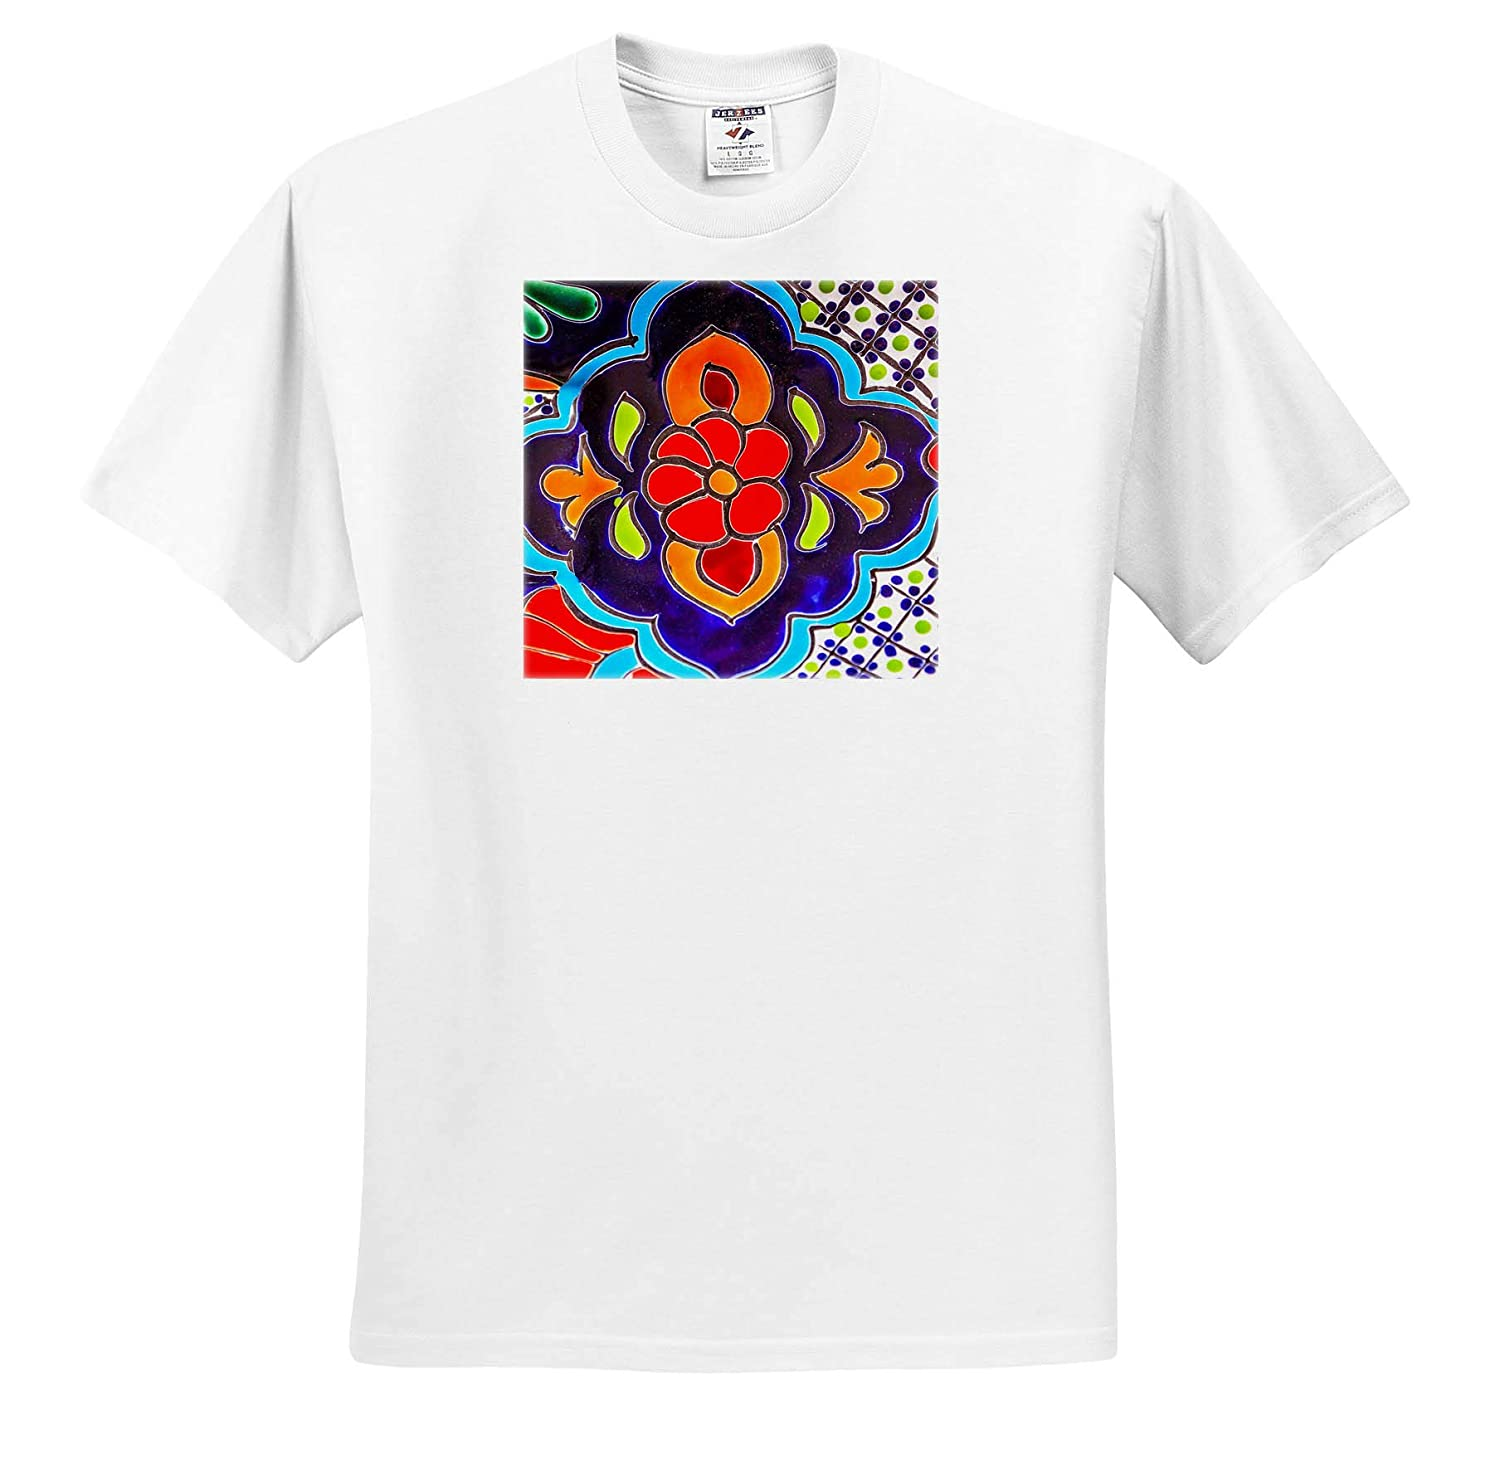 Mexico 3dRose Danita Delimont Decor Adult T-Shirt XL Colorful Ceramic Red Blue Flowers Decoration ts/_314394